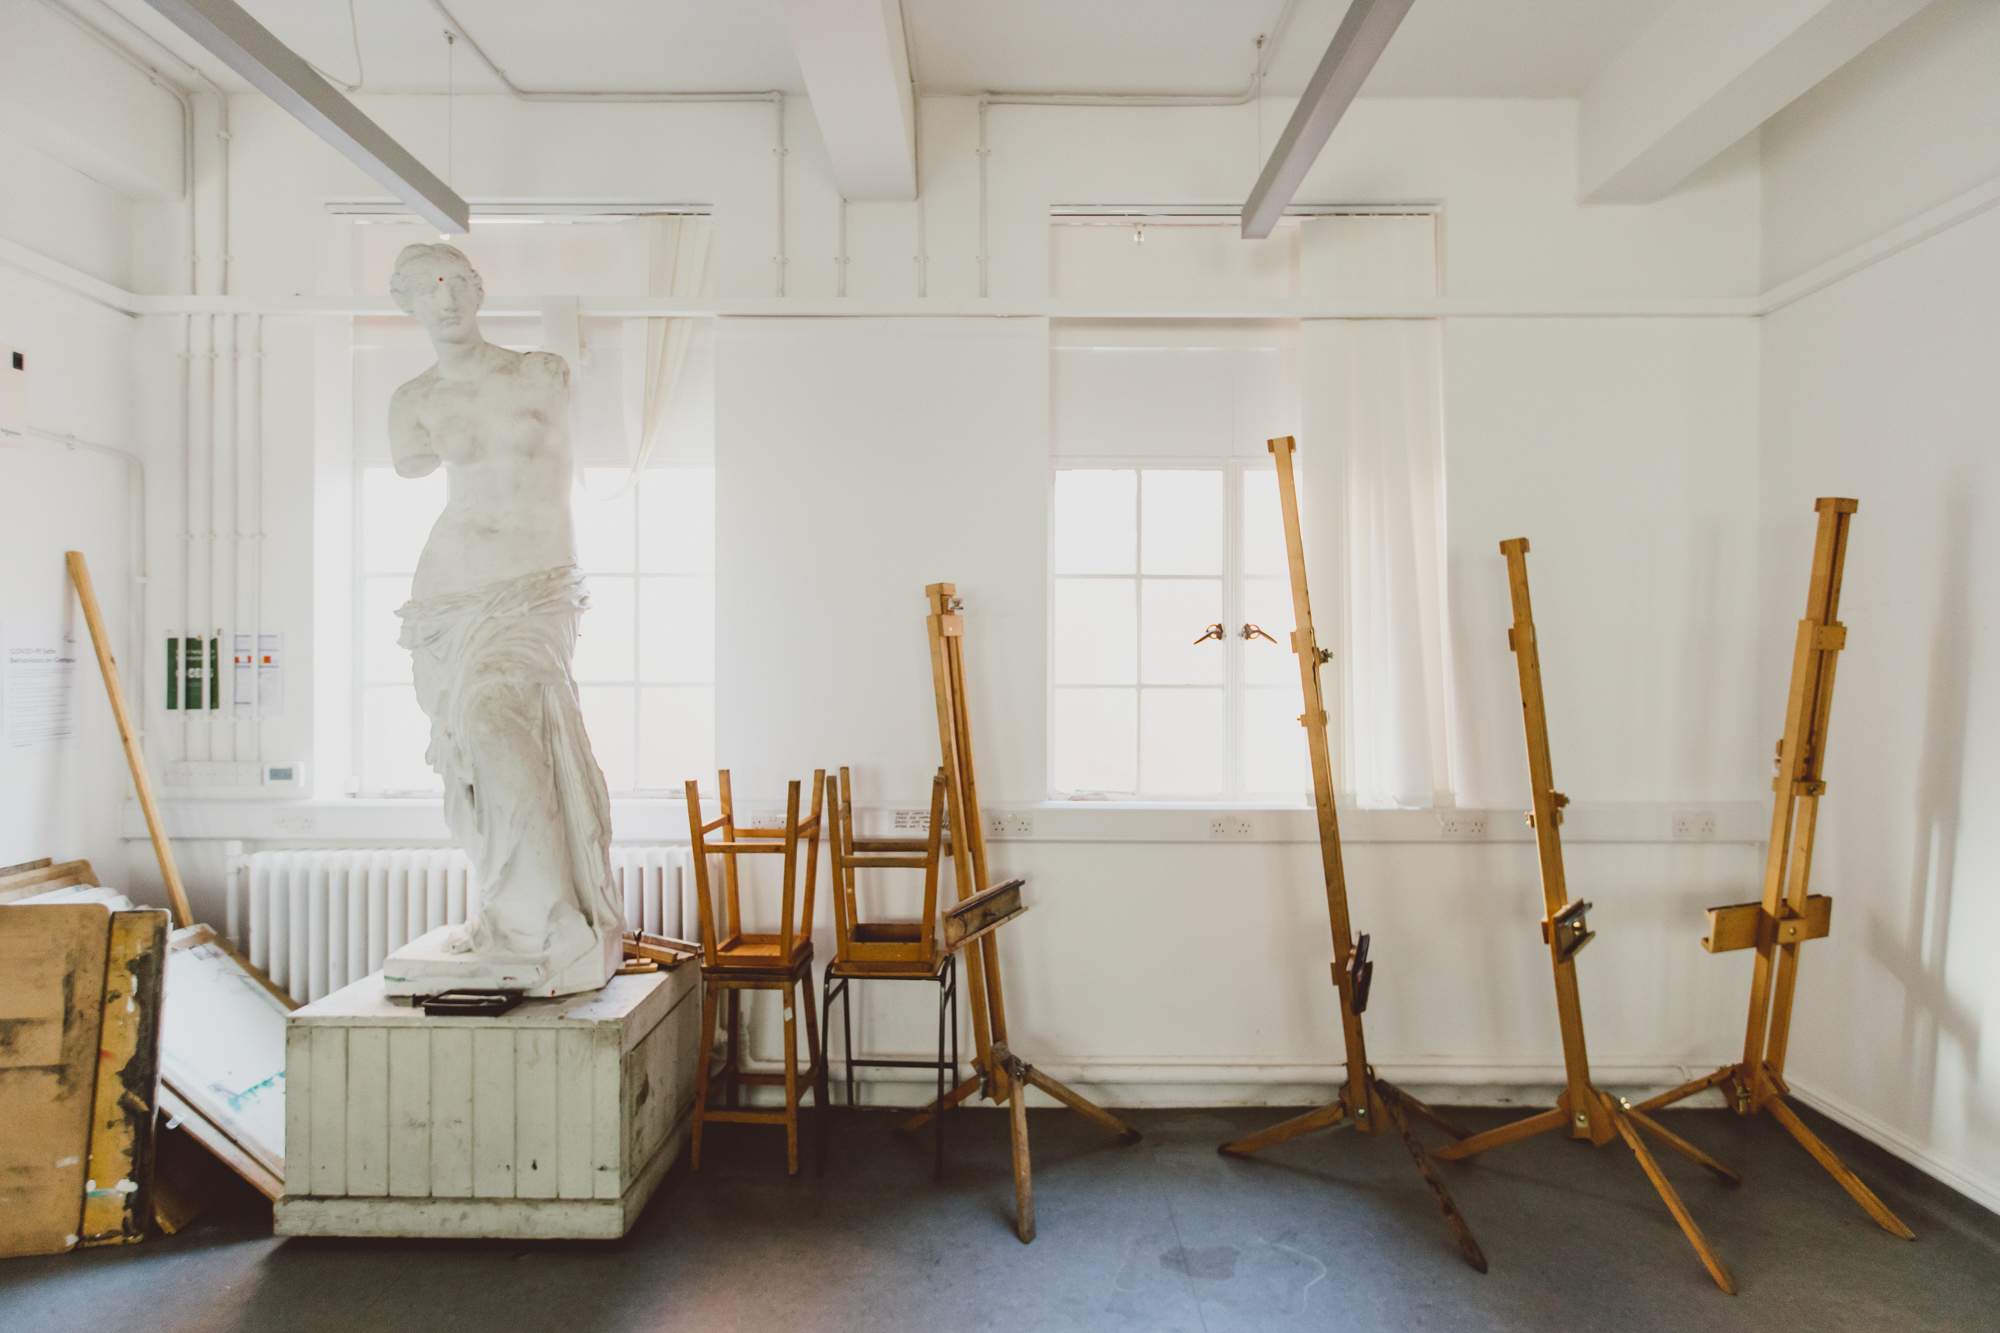 Statue and easels in life drawing room